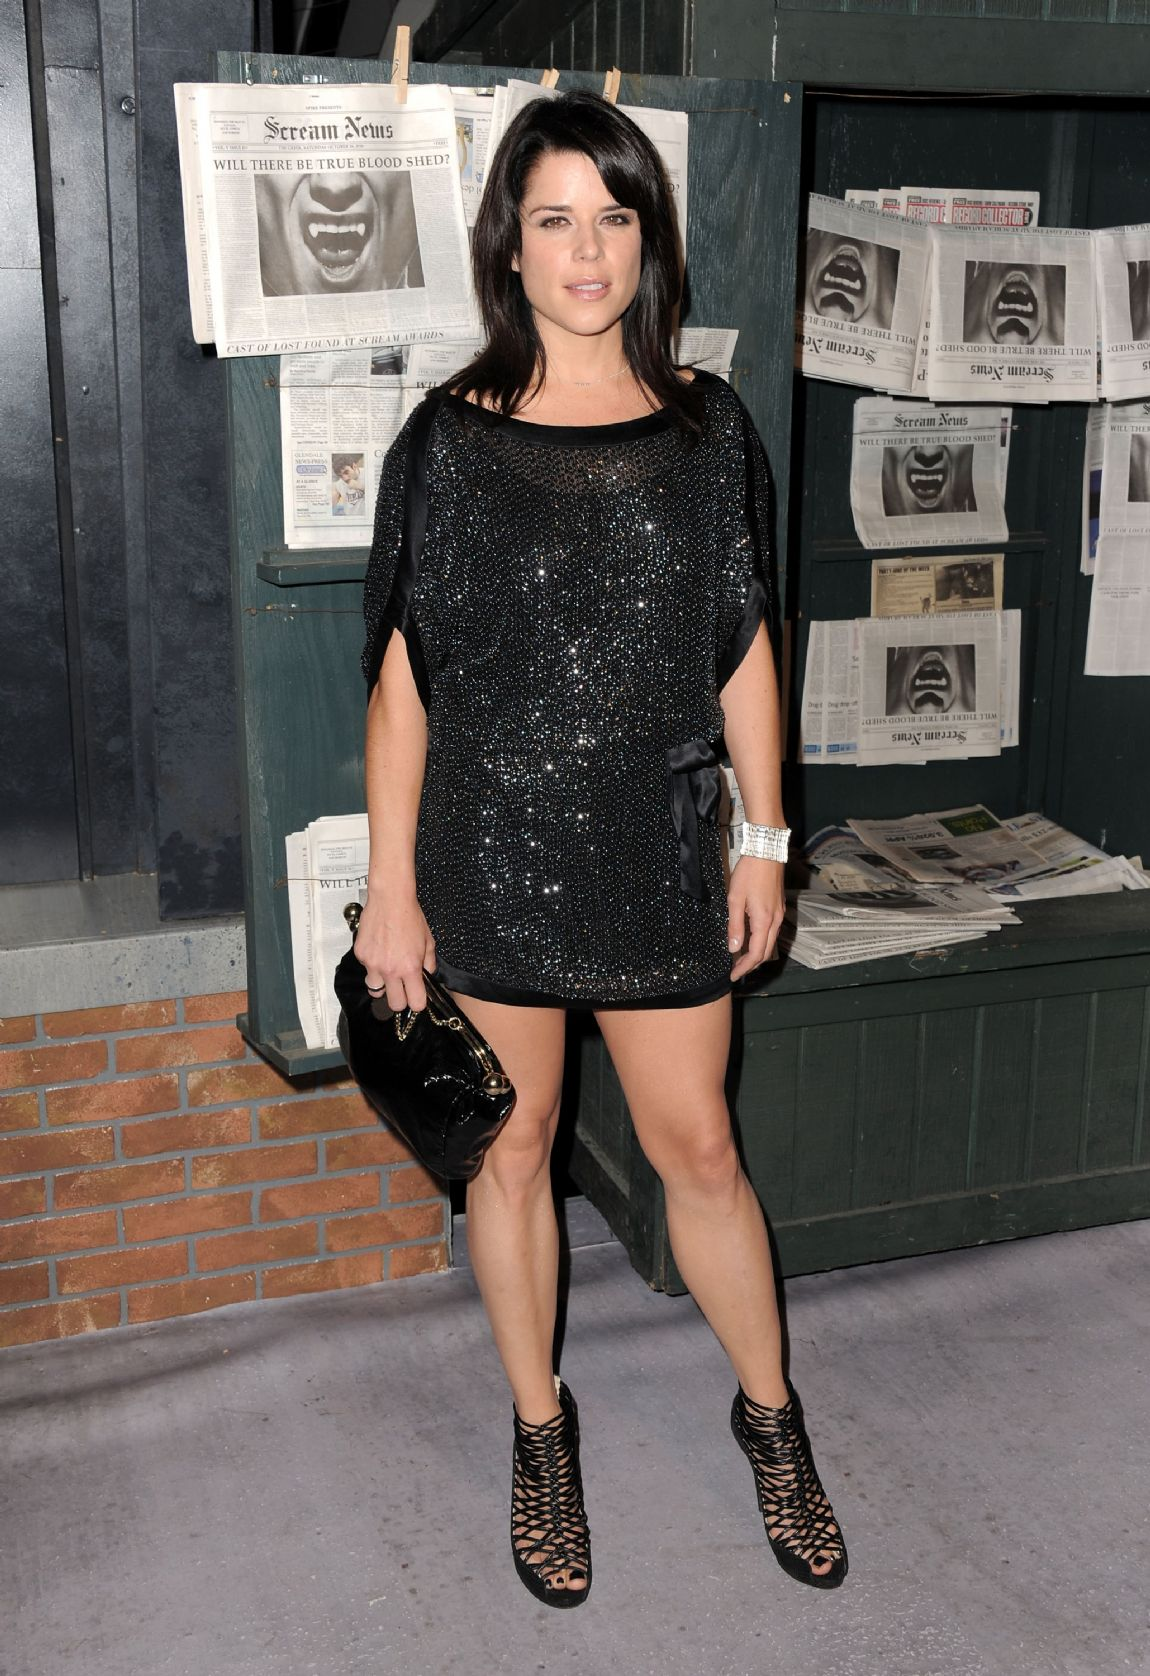 Neve Campbell photo 94 of 154 pics, wallpaper - photo ...